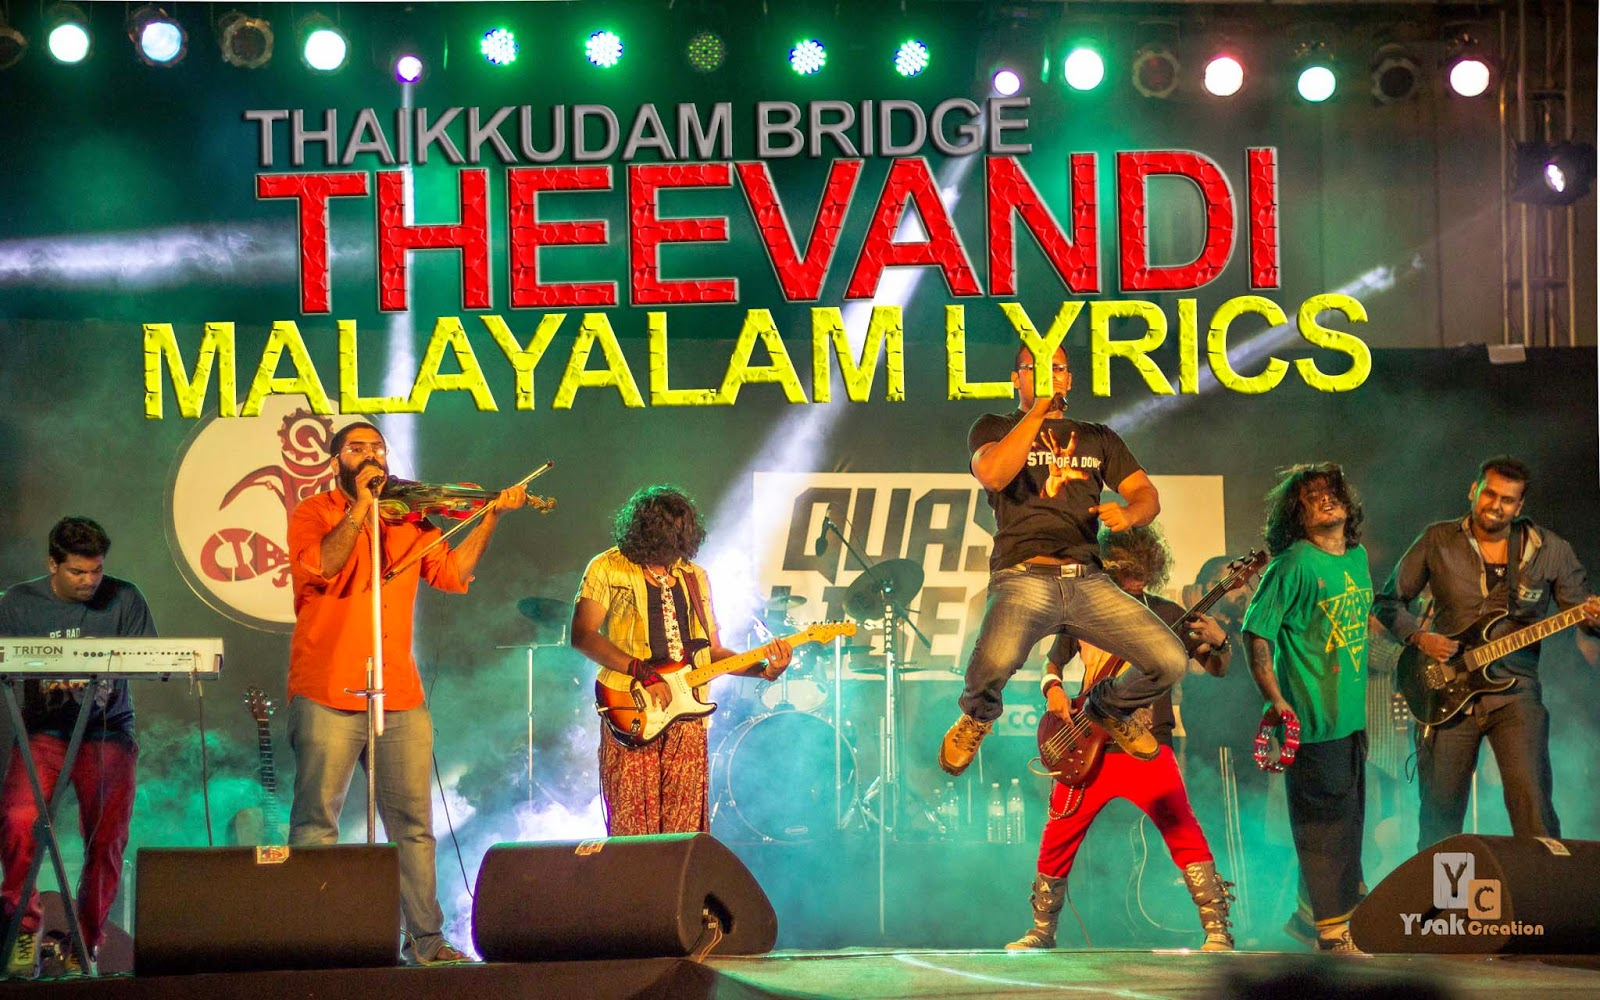 Theevandi - Thaikkudam Bridge Lyric Video + Free Download mp3